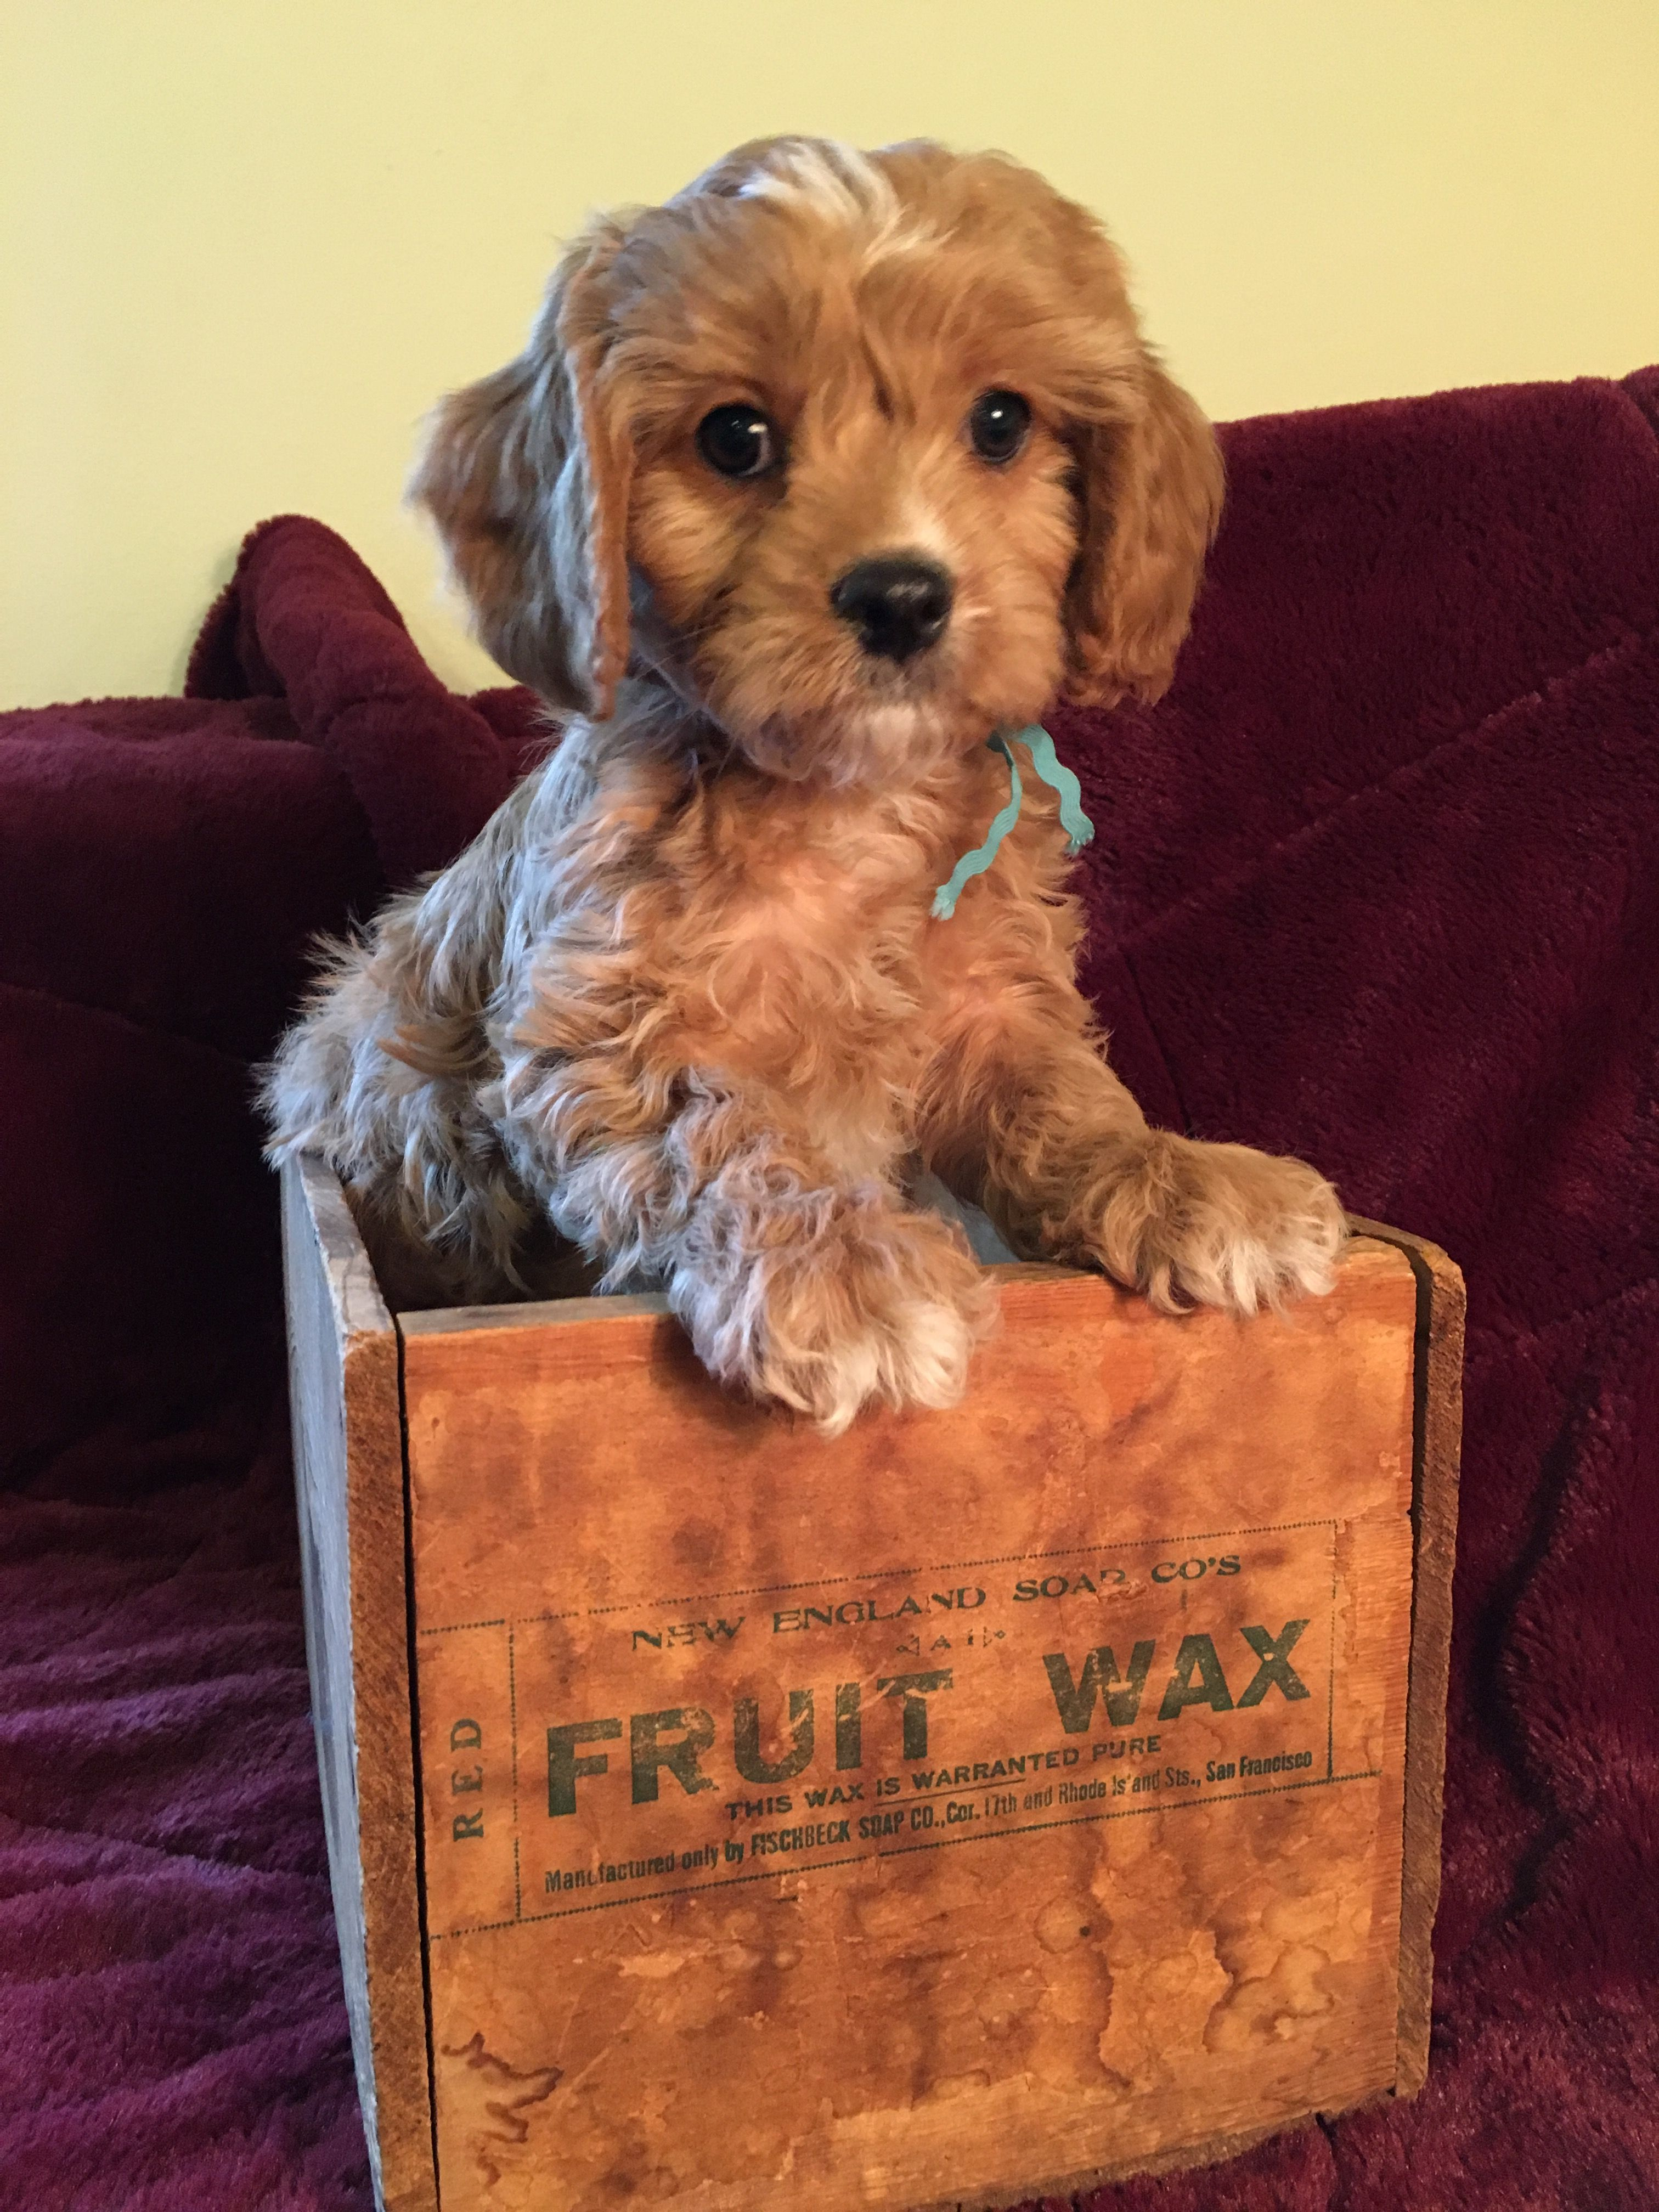 Its milk guys i promise ally lyons - Riddle Aka Dano The Cavapoo Puppy 8 Weeks Allie Dickens Pup Www